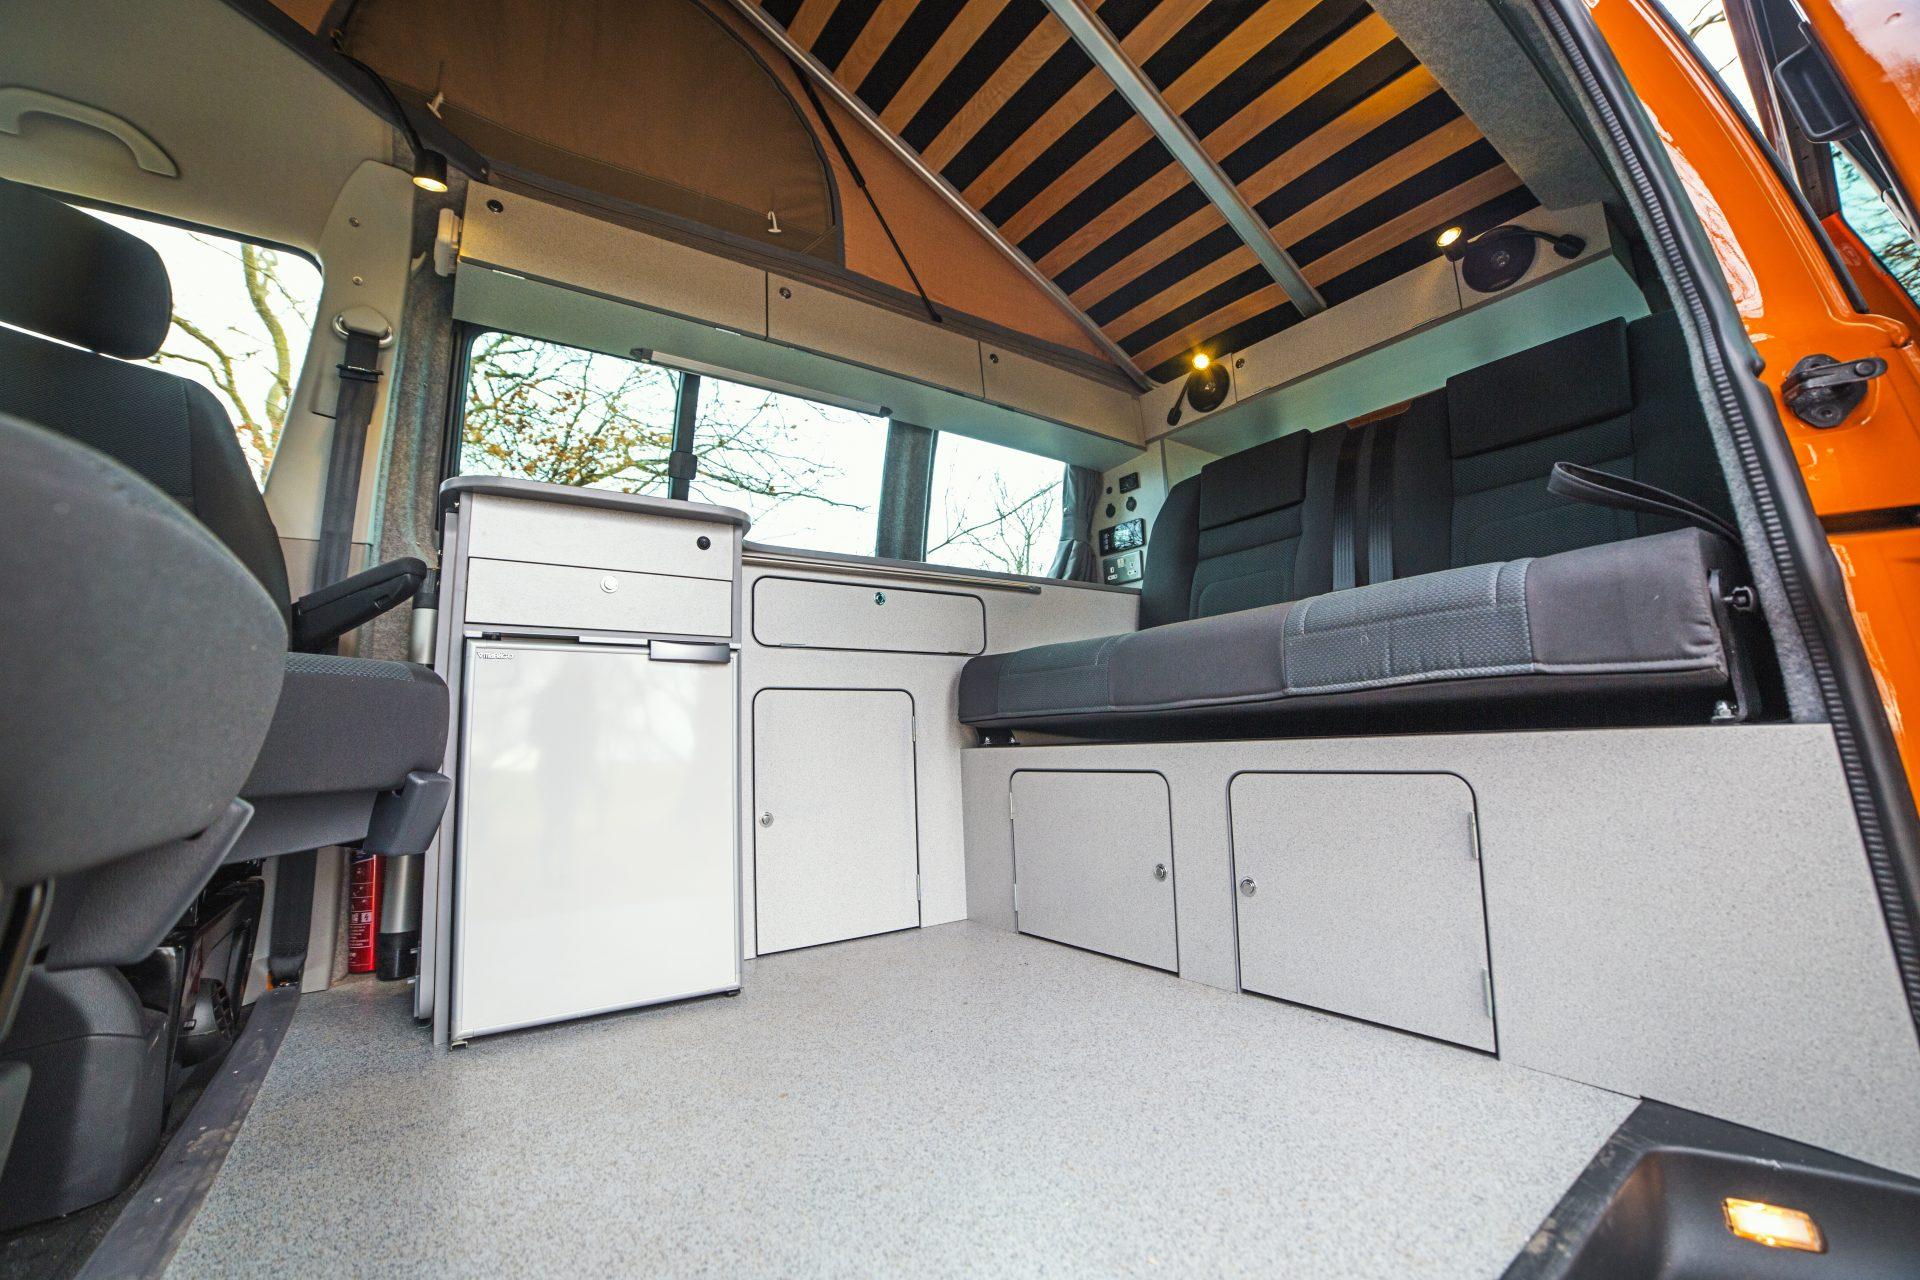 Campervan Interior - light coloured cupboards and black seats